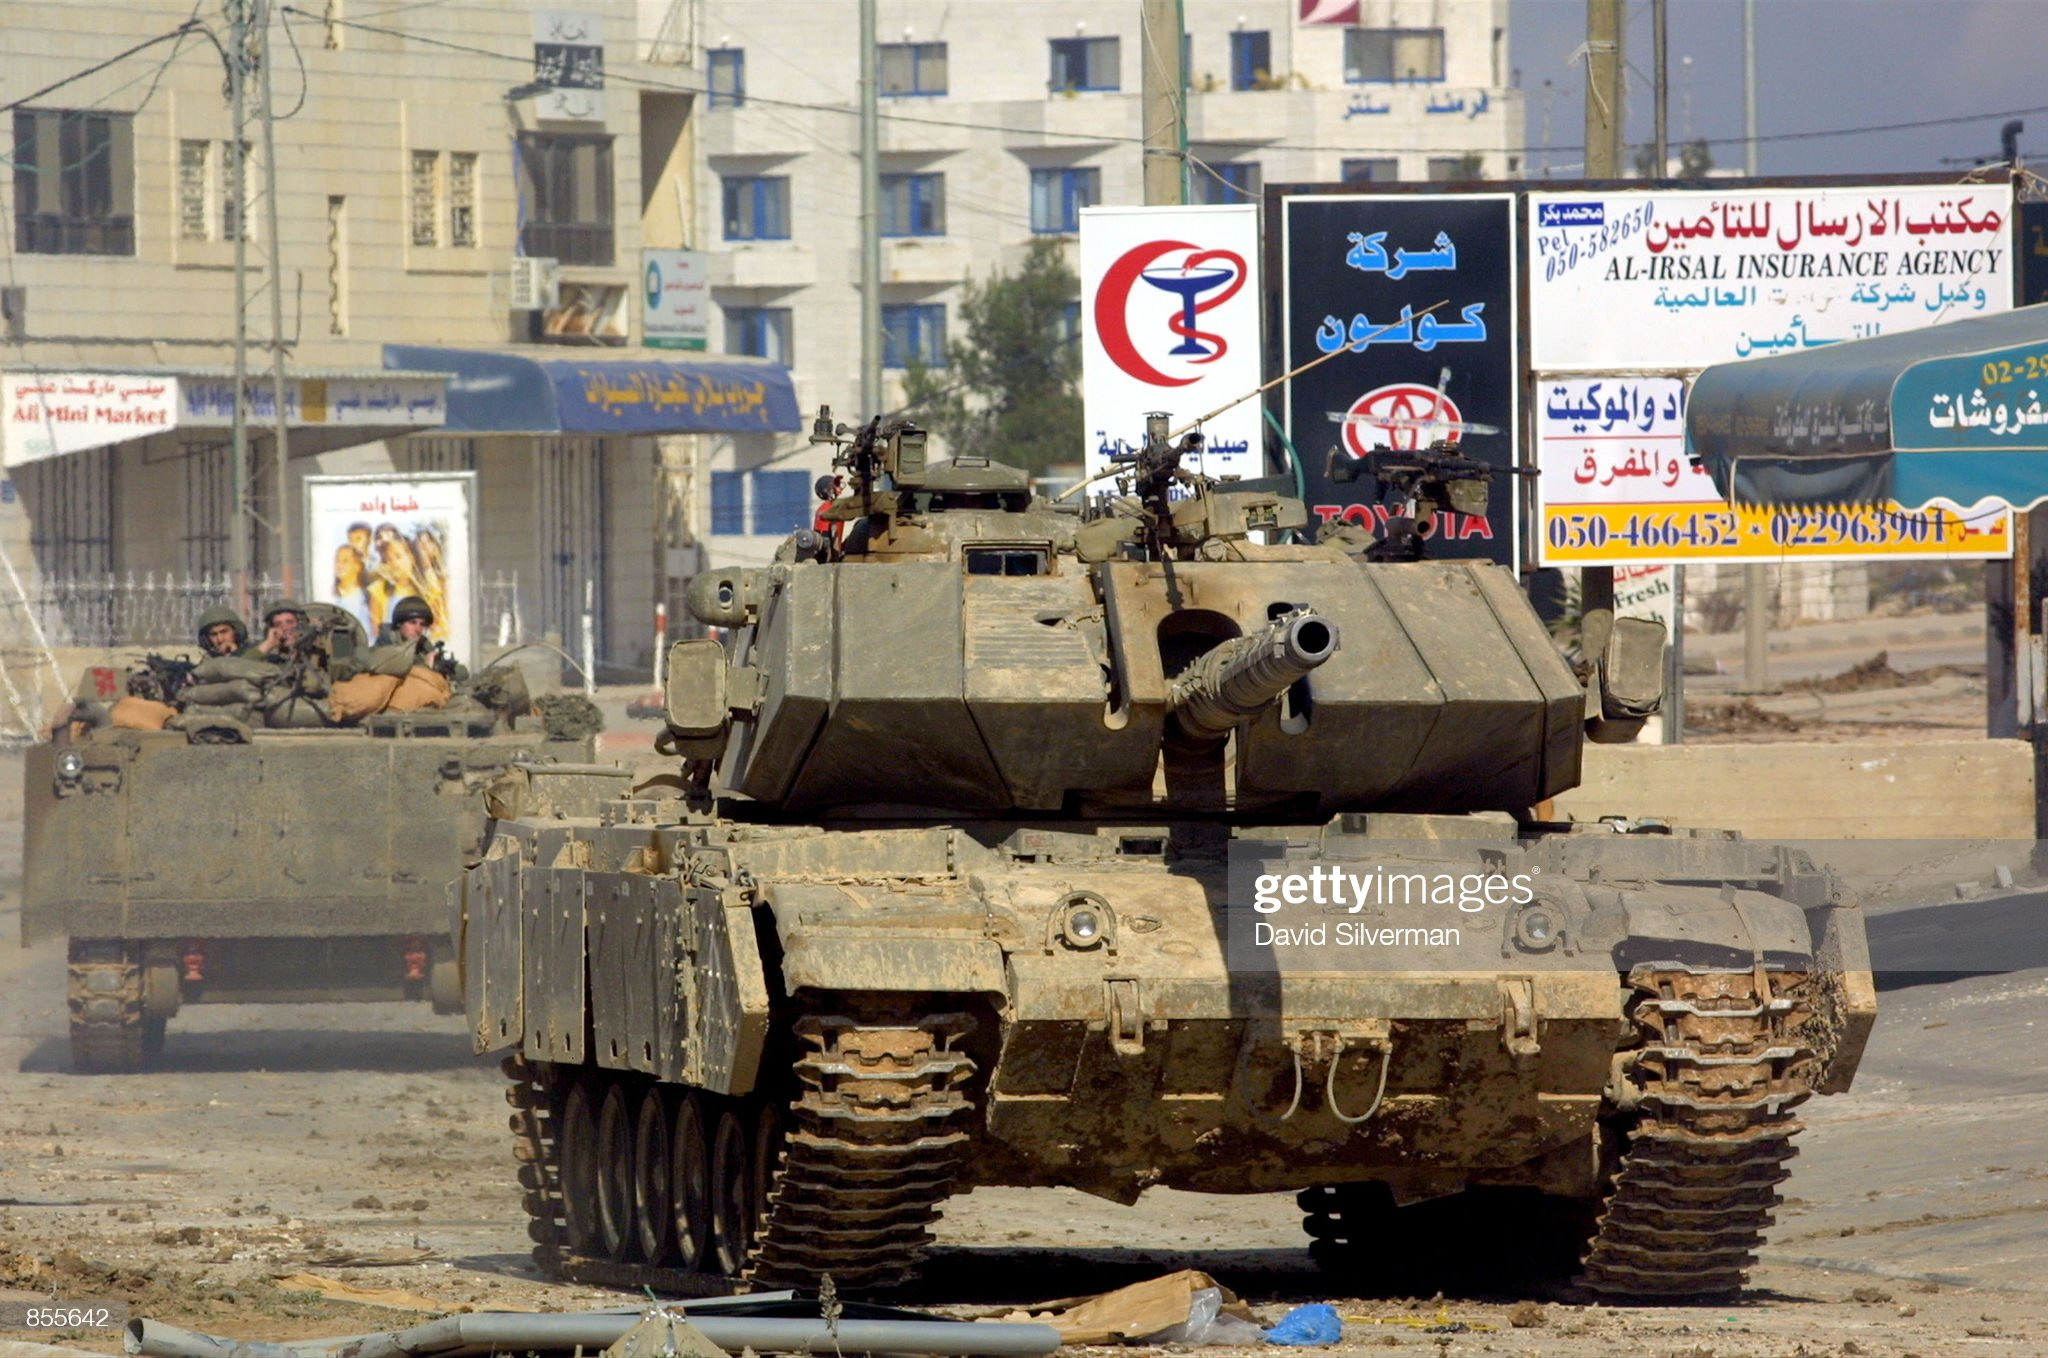 https://media.gettyimages.com/photos/an-israeli-tank-approaches-their-position-opposite-palestinian-leader-picture-id855642?s=2048x2048